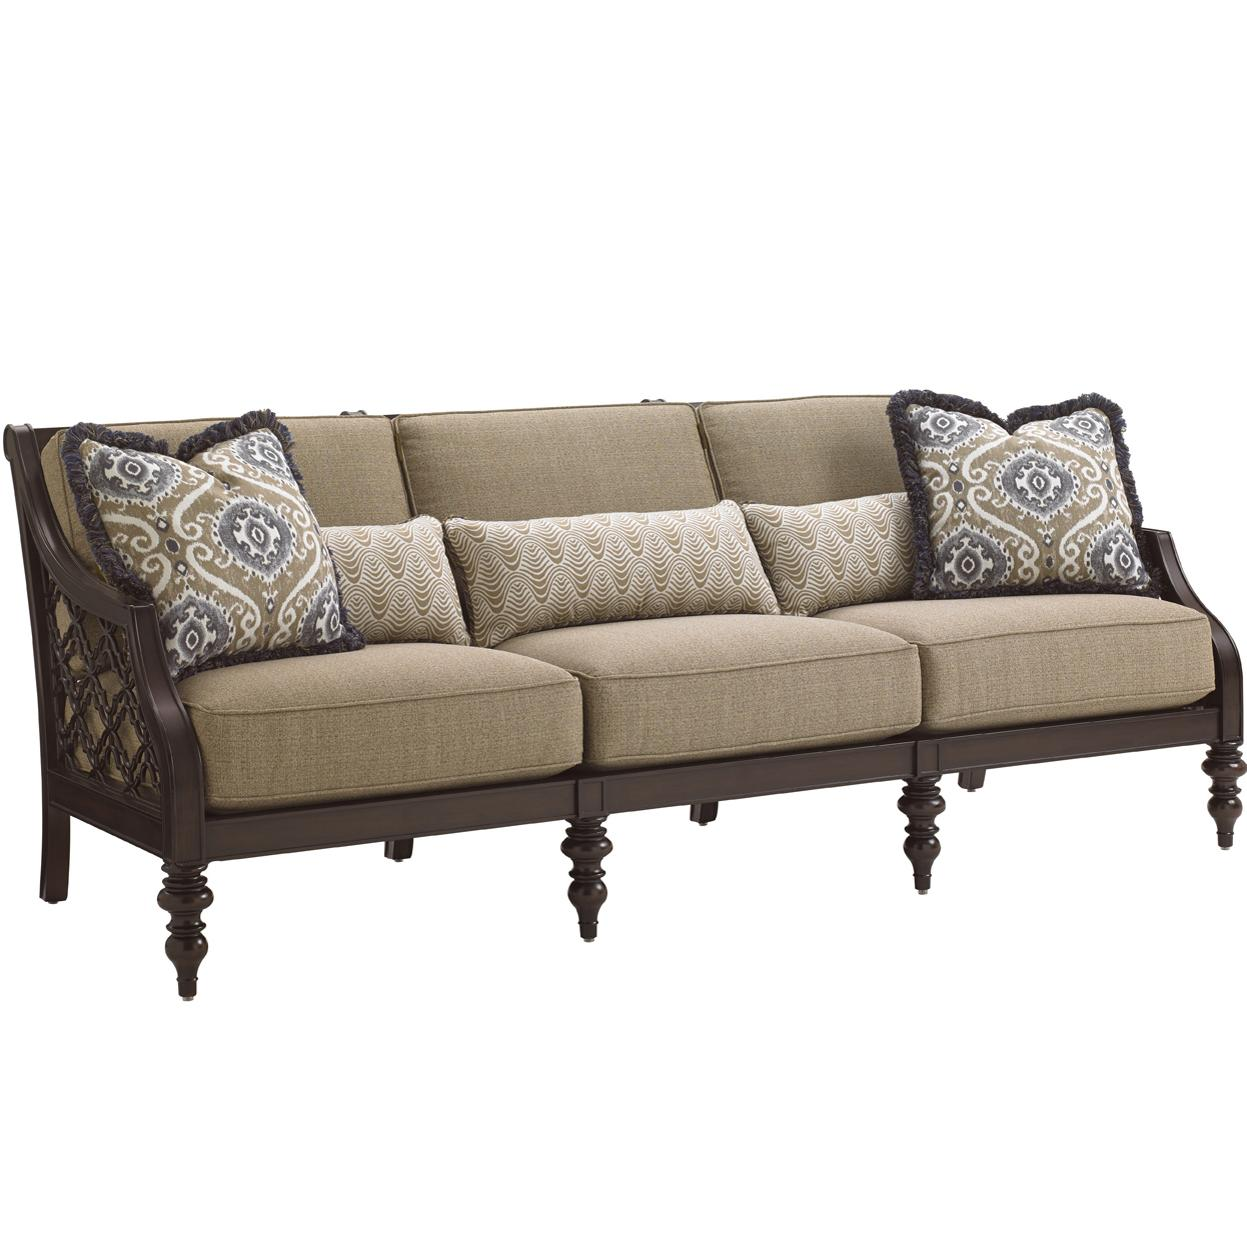 black outdoor sofa sectional sofas toronto craigslist tommy bahama living sands with